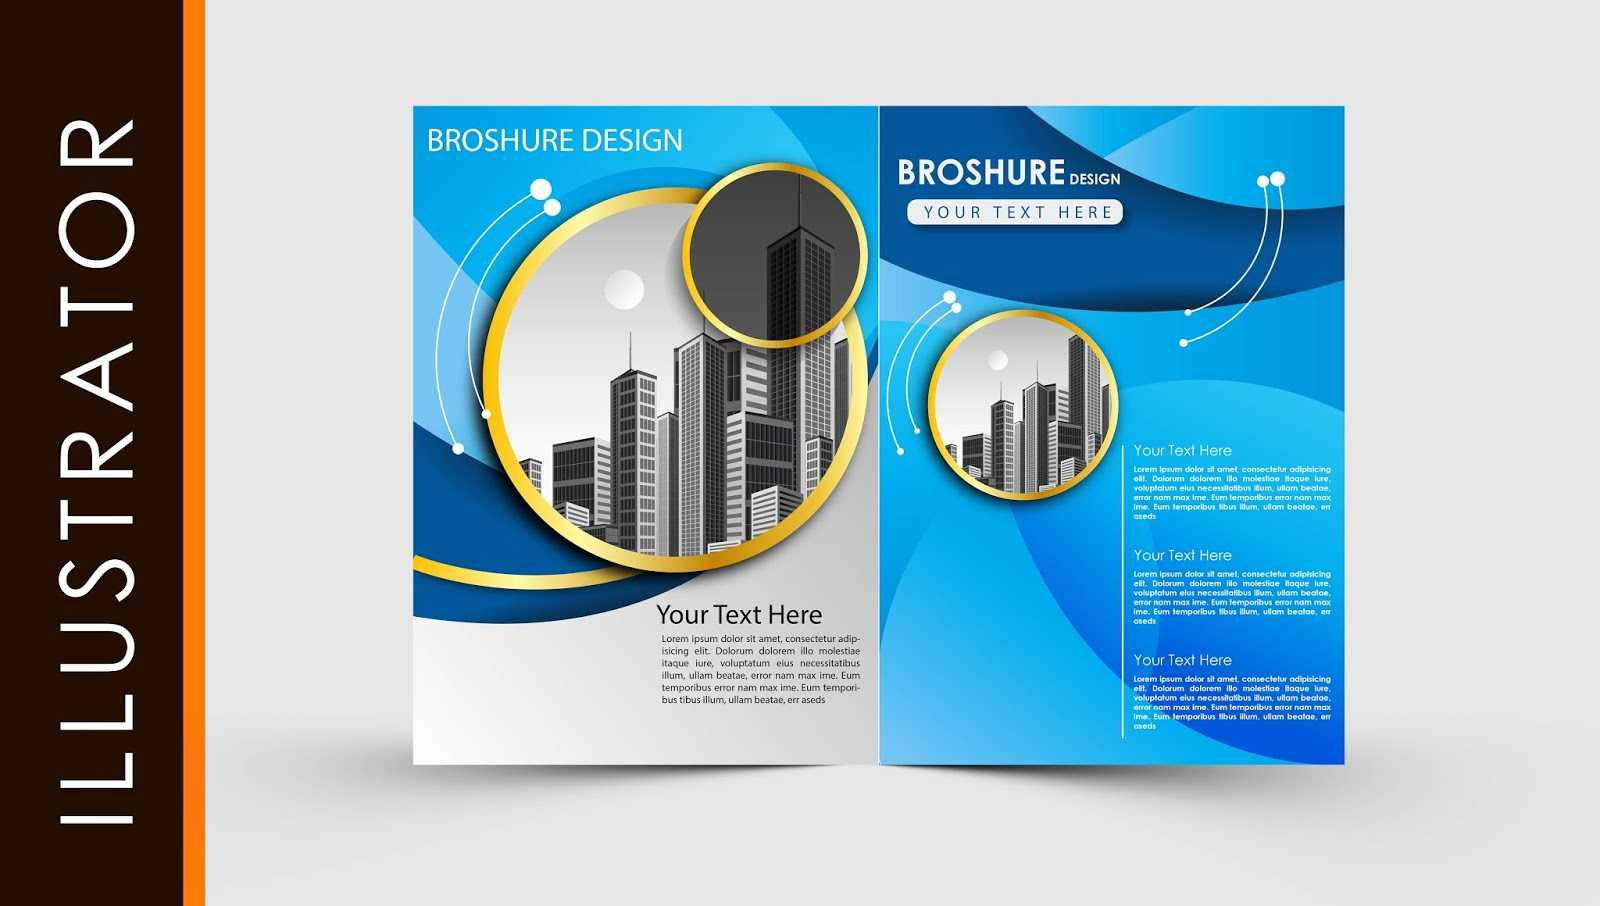 023 Brochure Templates Free Download For Photoshop Template Throughout Free Illustrator Brochure Templates Download